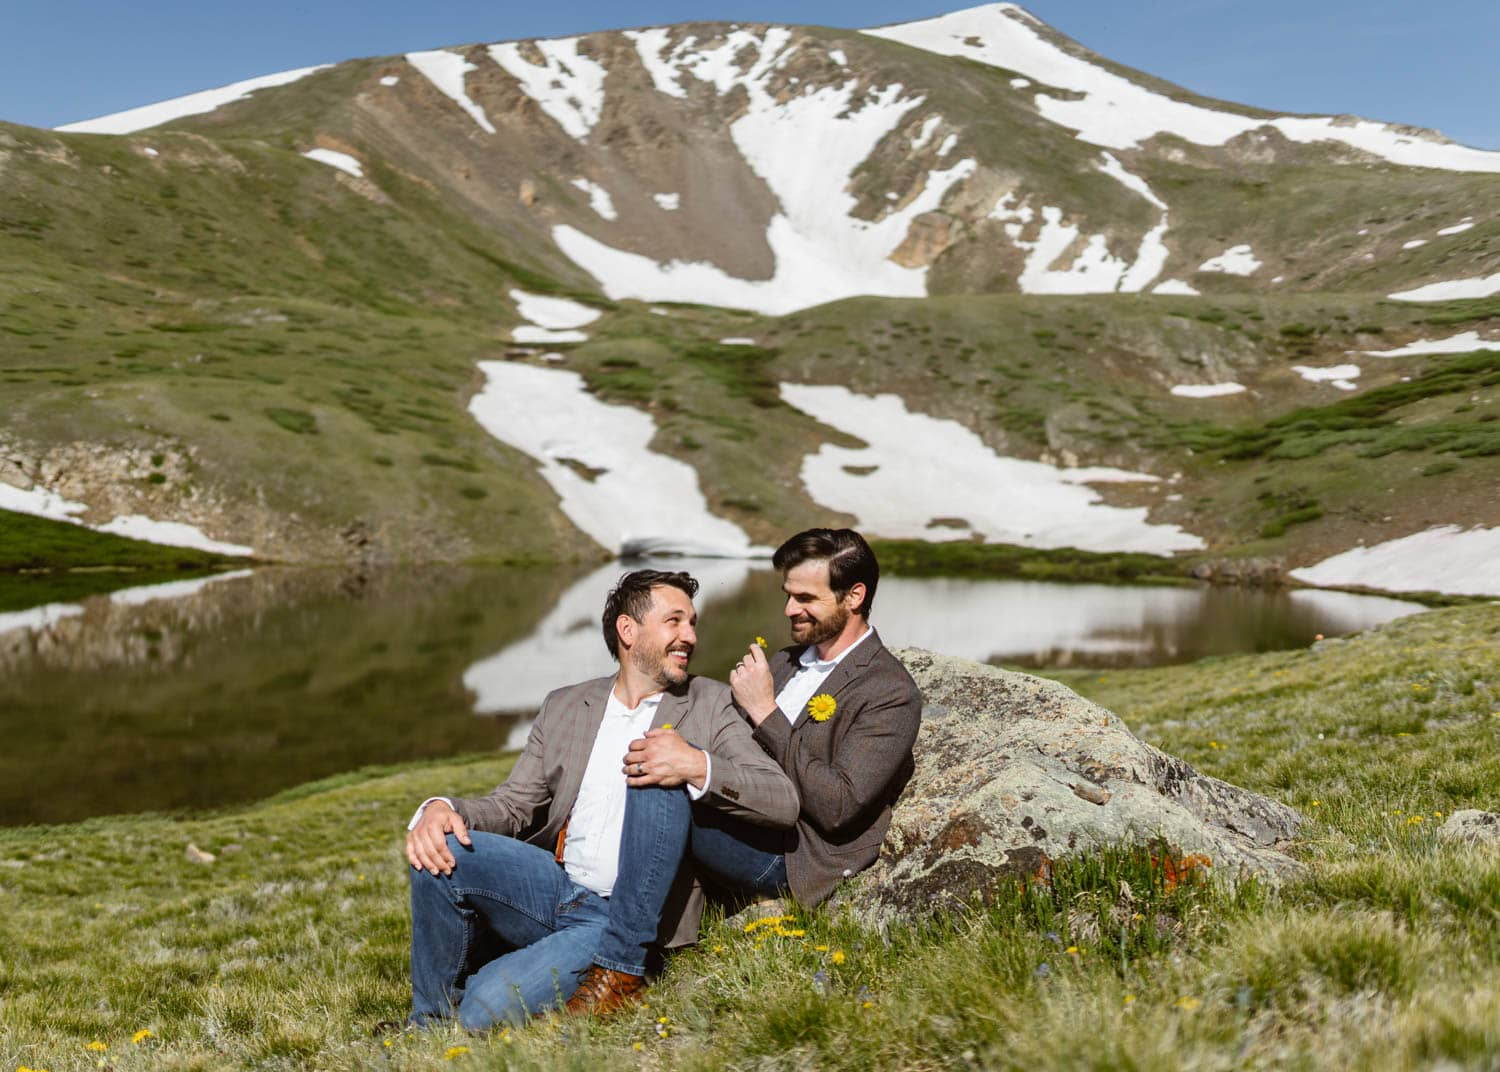 Grooms at Alpine Lake Colorado Elopement Guide and Spots